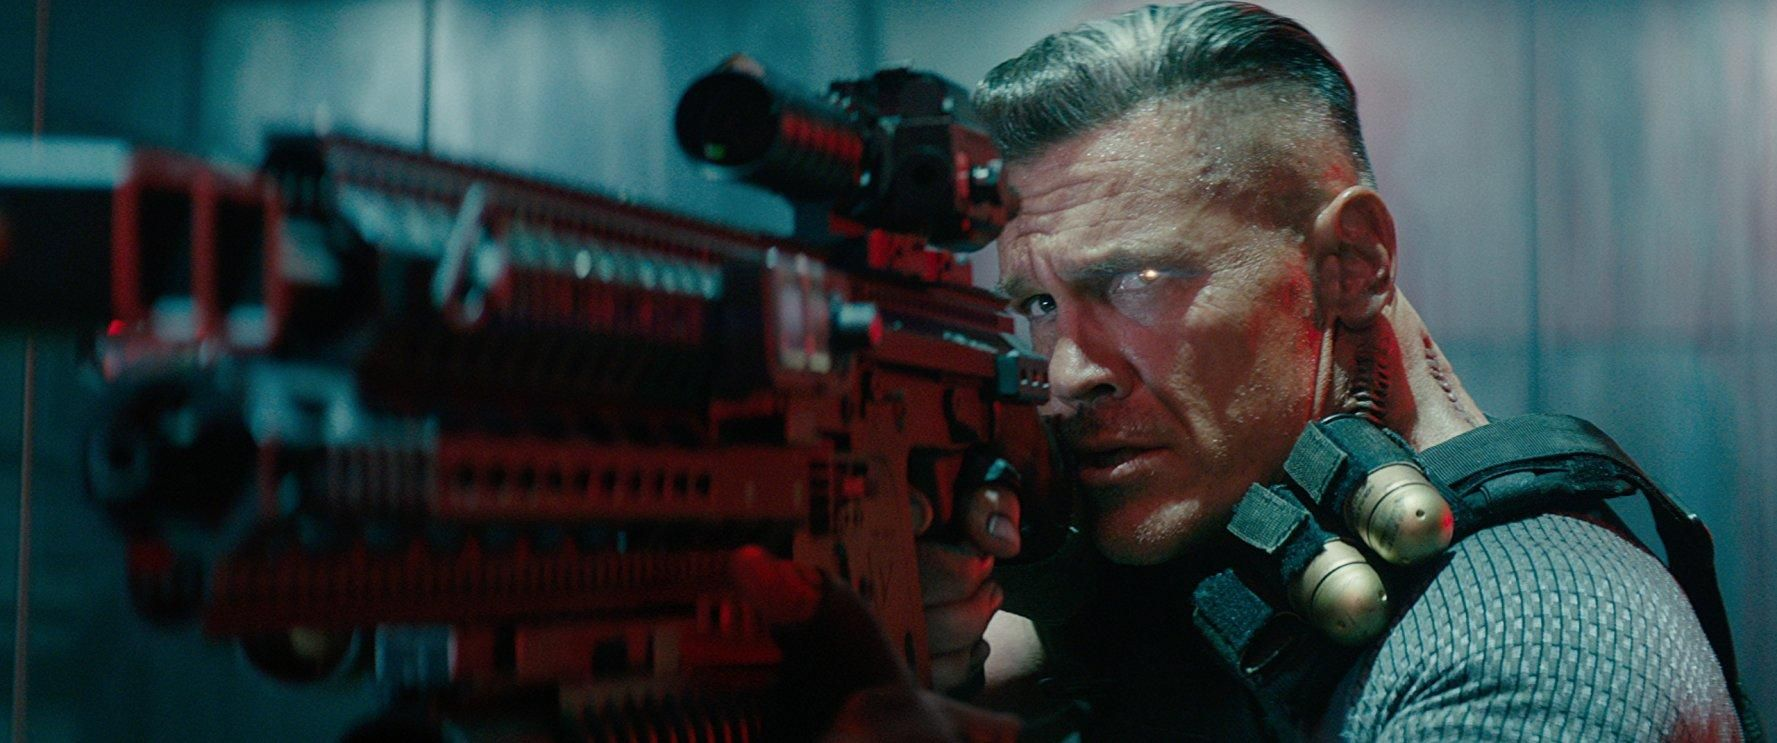 Cable (Josh Brolin) dans Deadpool 2